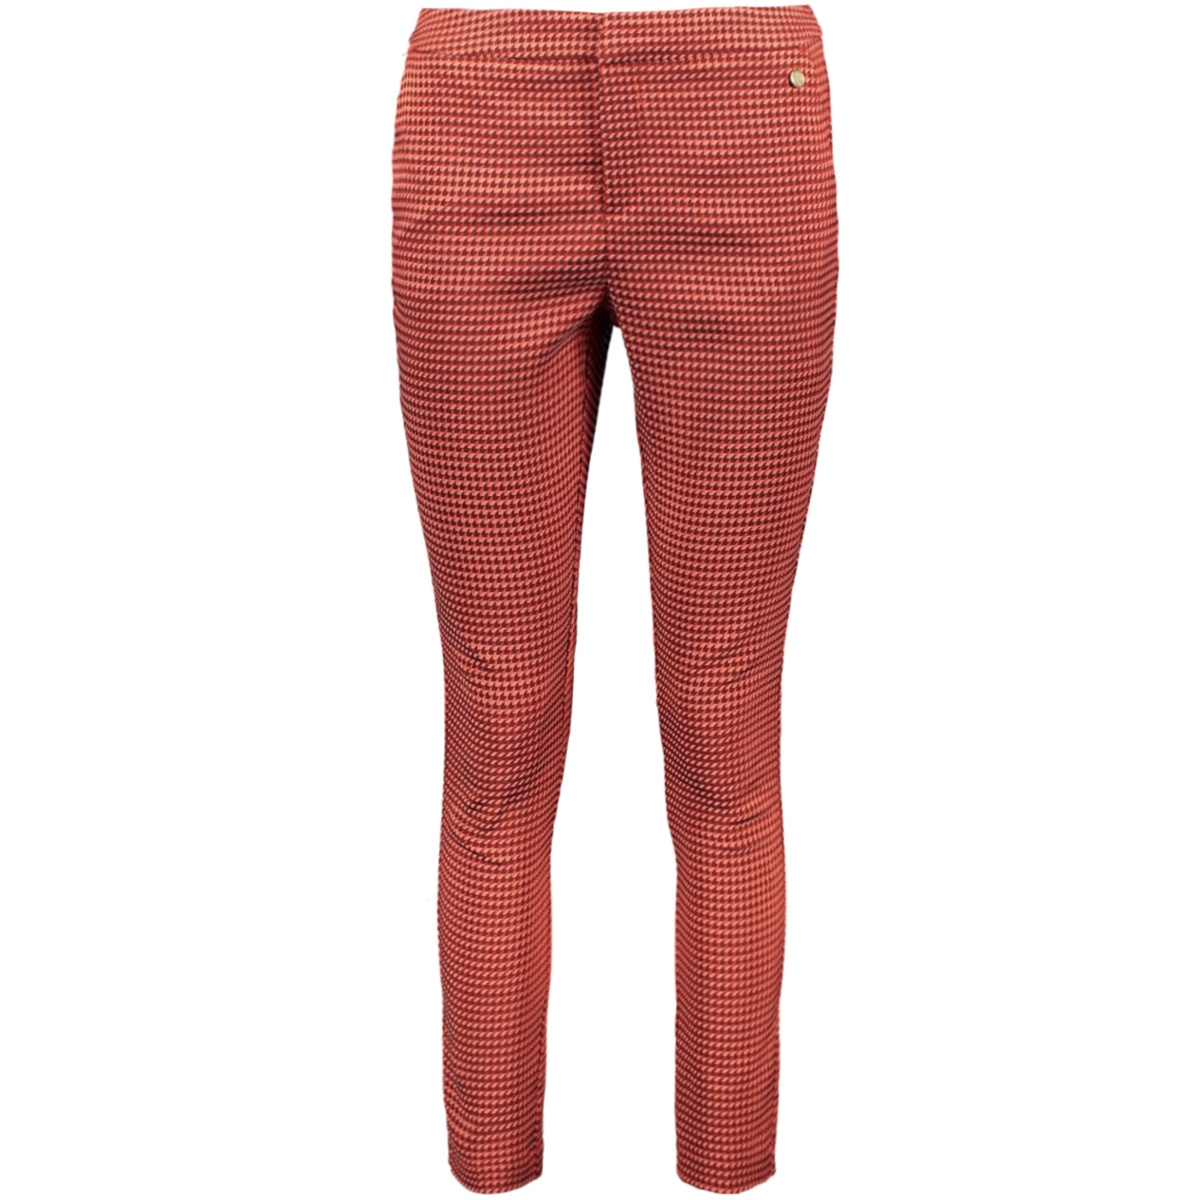 flore pant ss19b105 harper & yve broek another red